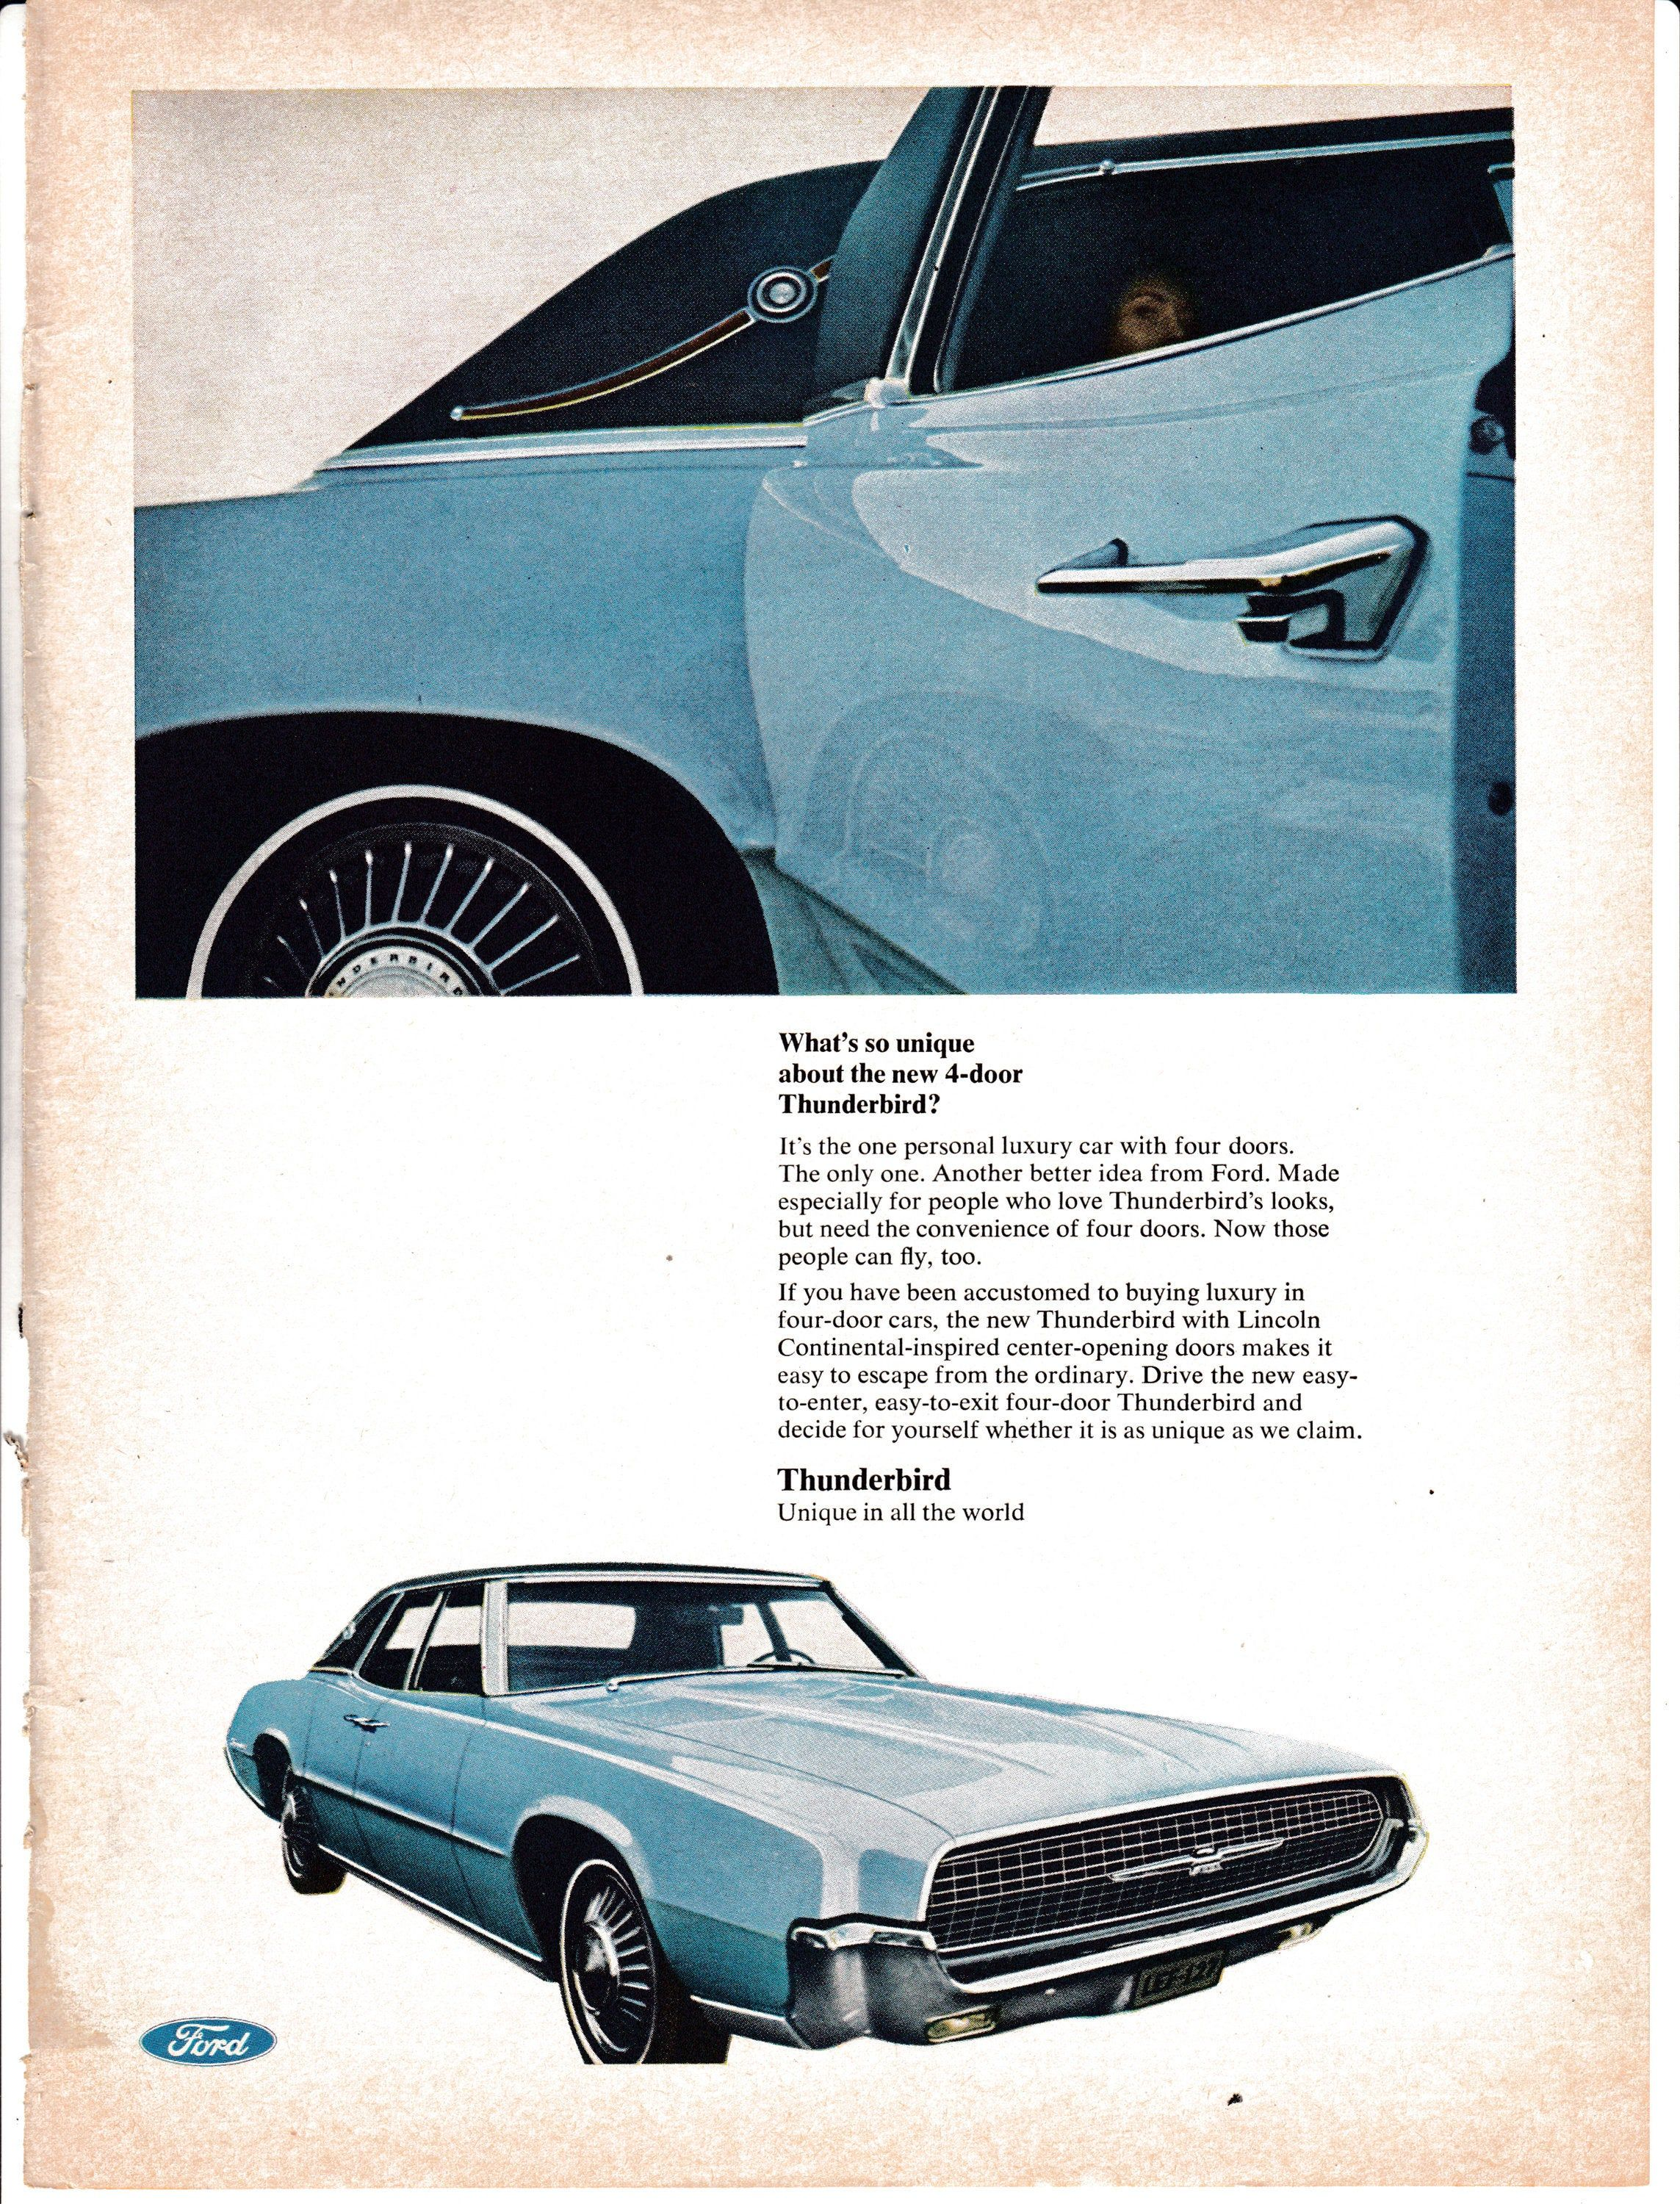 1967 Ford Thunderbird-New Unique 4 Door-Rear Suicide Original Magazine Ad-Auto